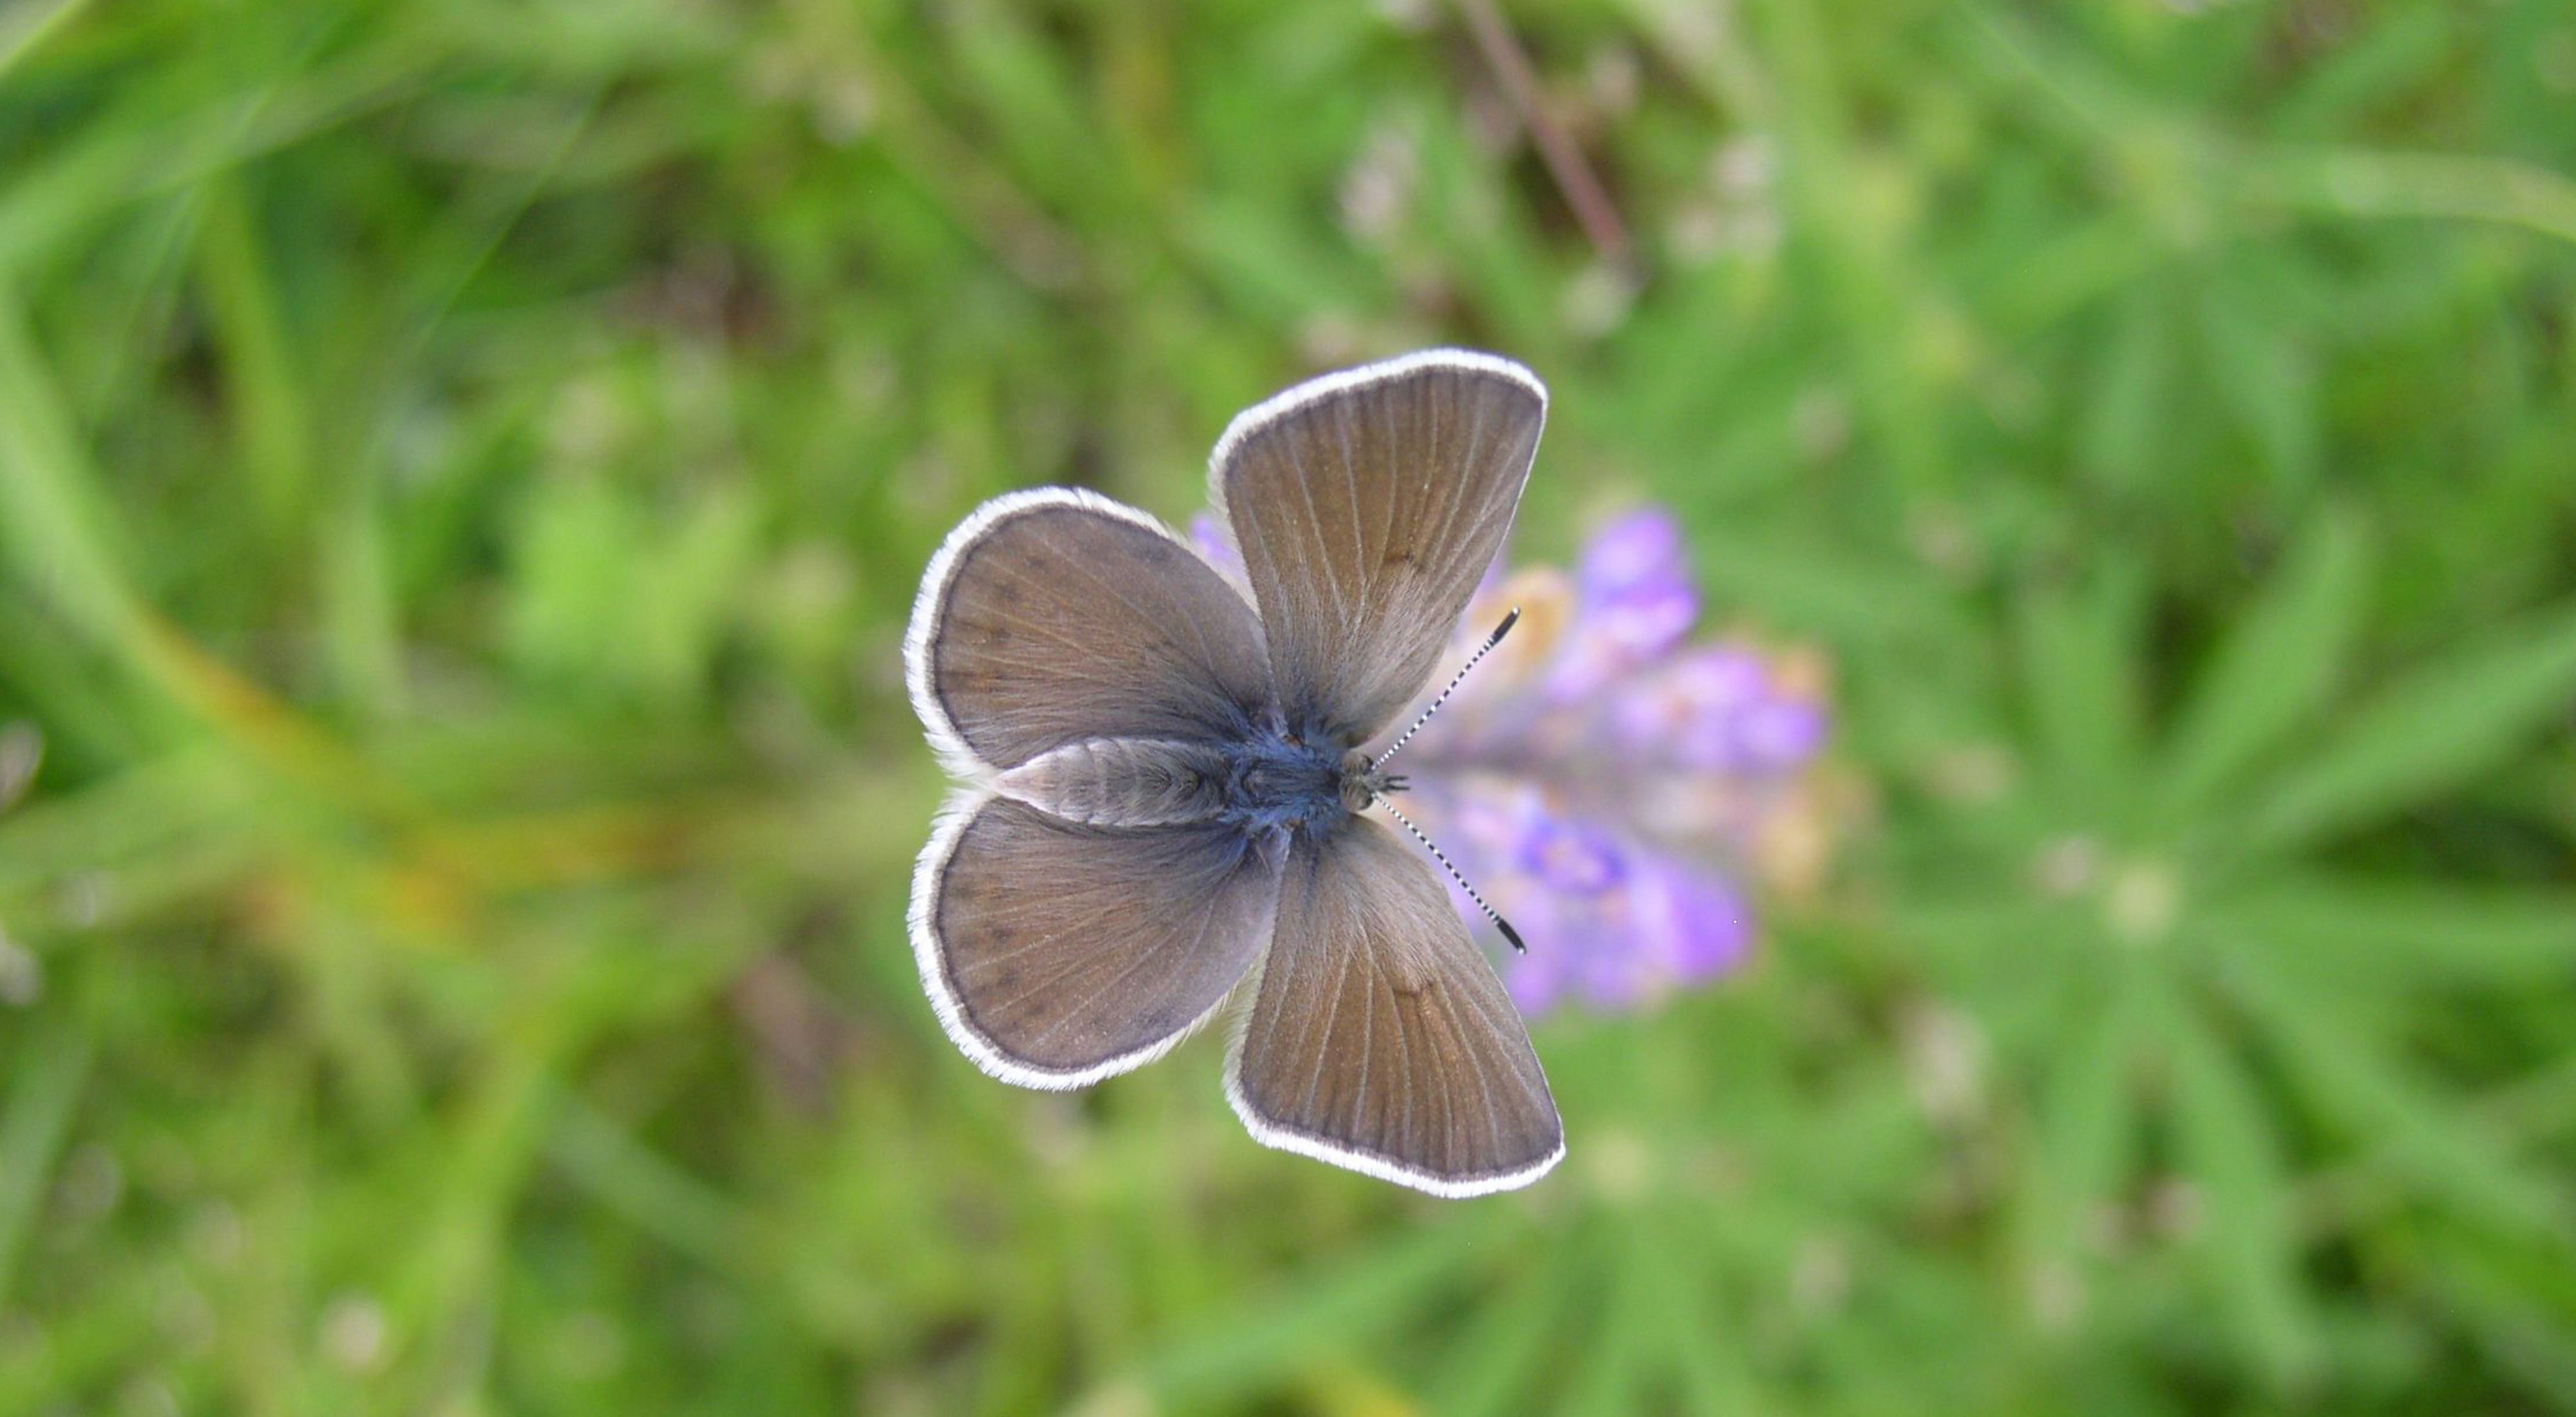 A Fender's Blue butterfly perched on a Kincaid's Lupine flower